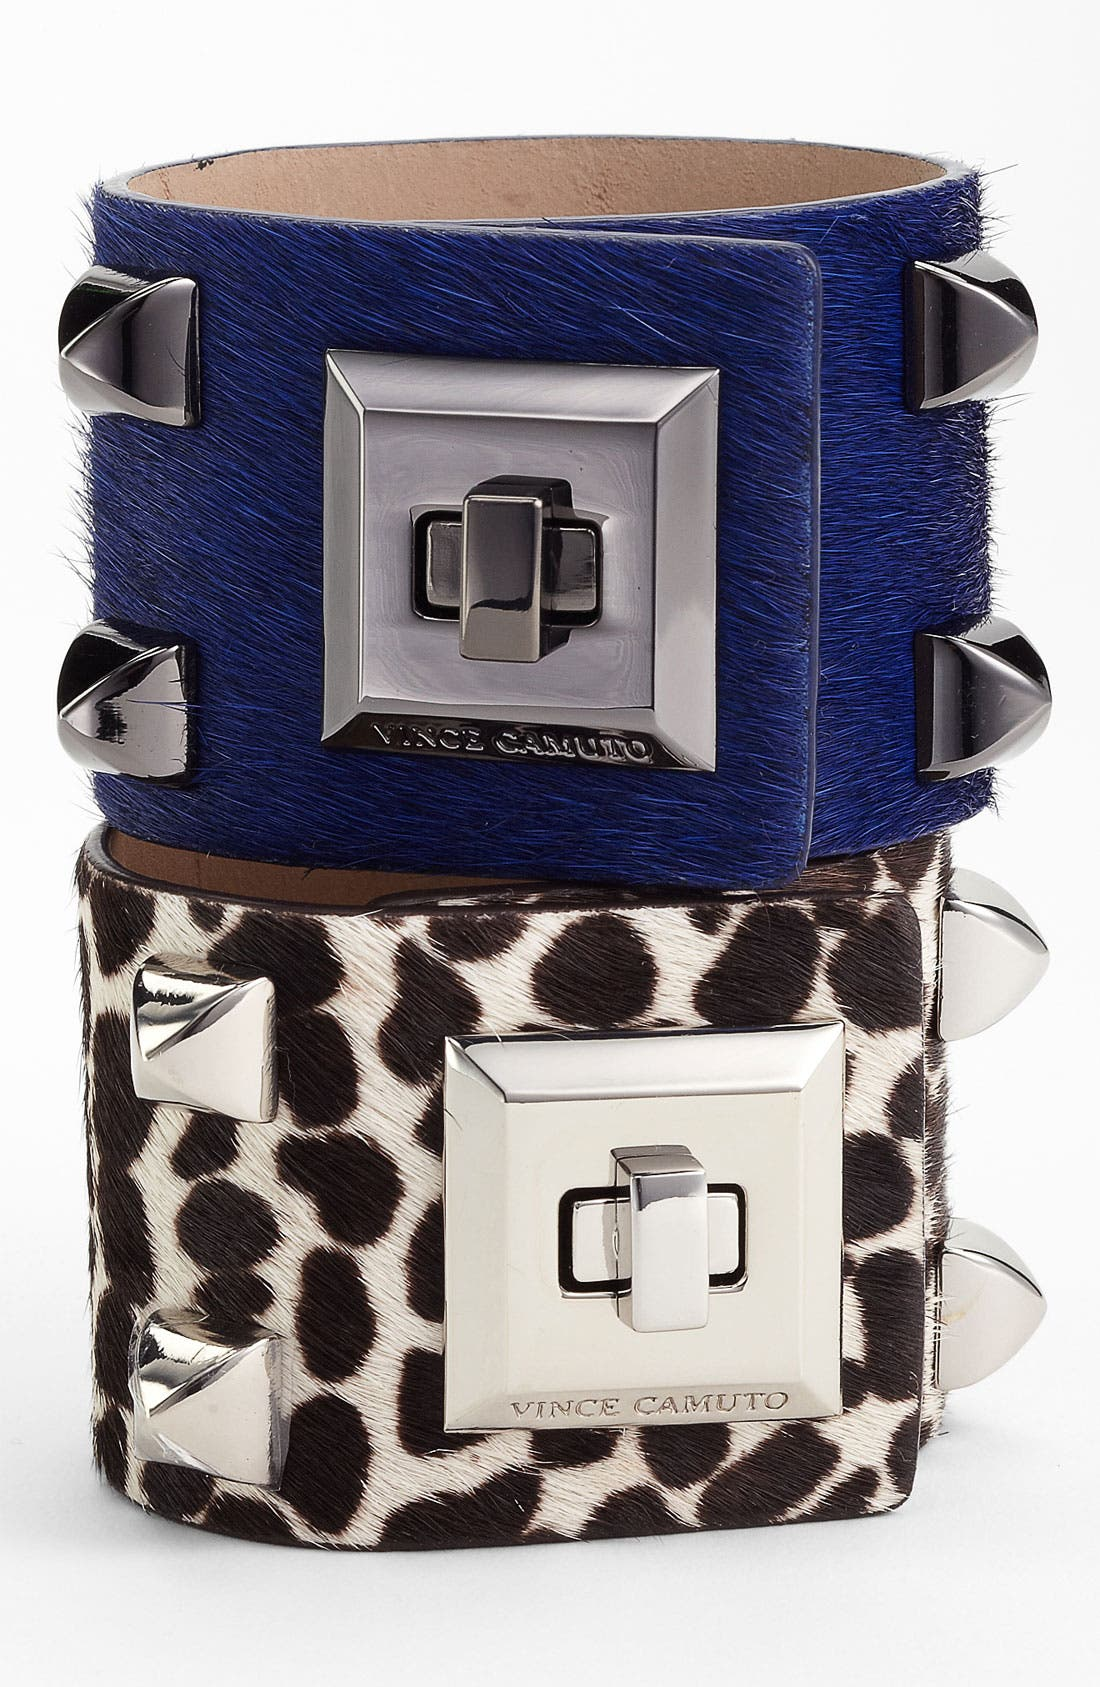 Alternate Image 1 Selected - Vince Camuto 'Animal' Cuff